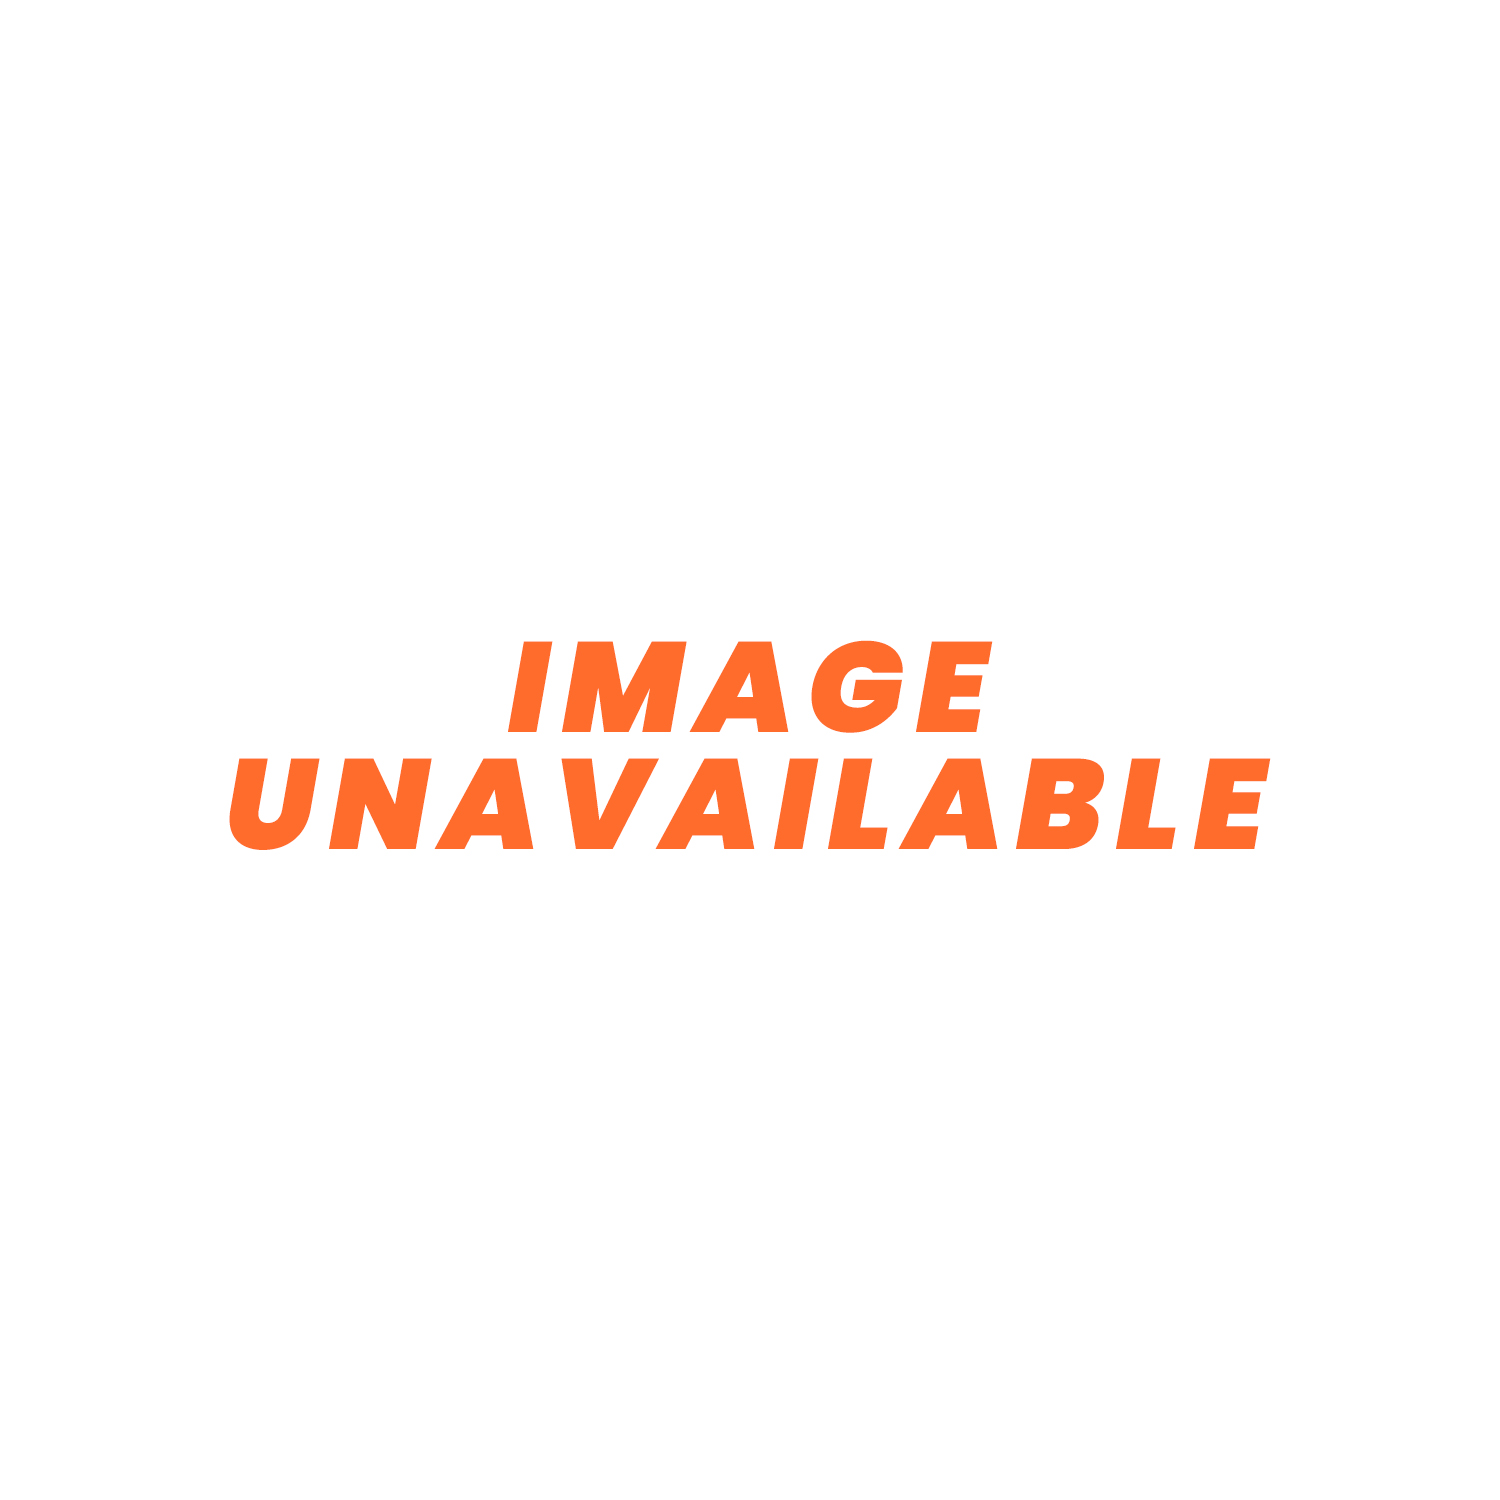 EWP130 Alloy Water Pump & Digital Controller 24v kit